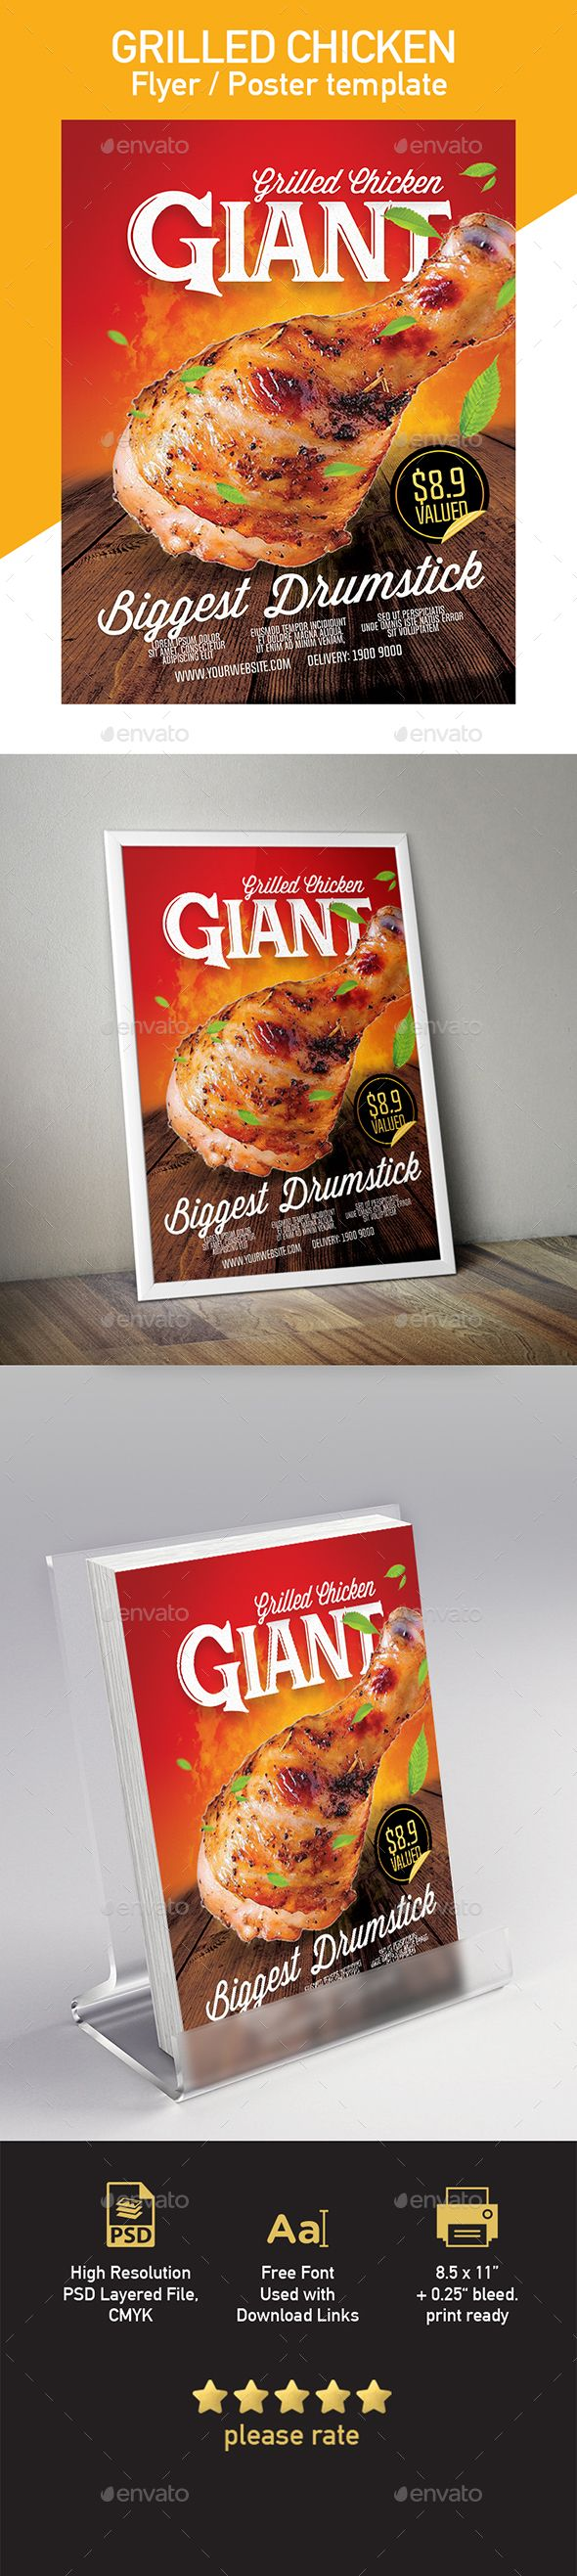 grilled chicken template for flyer poster grilled chicken